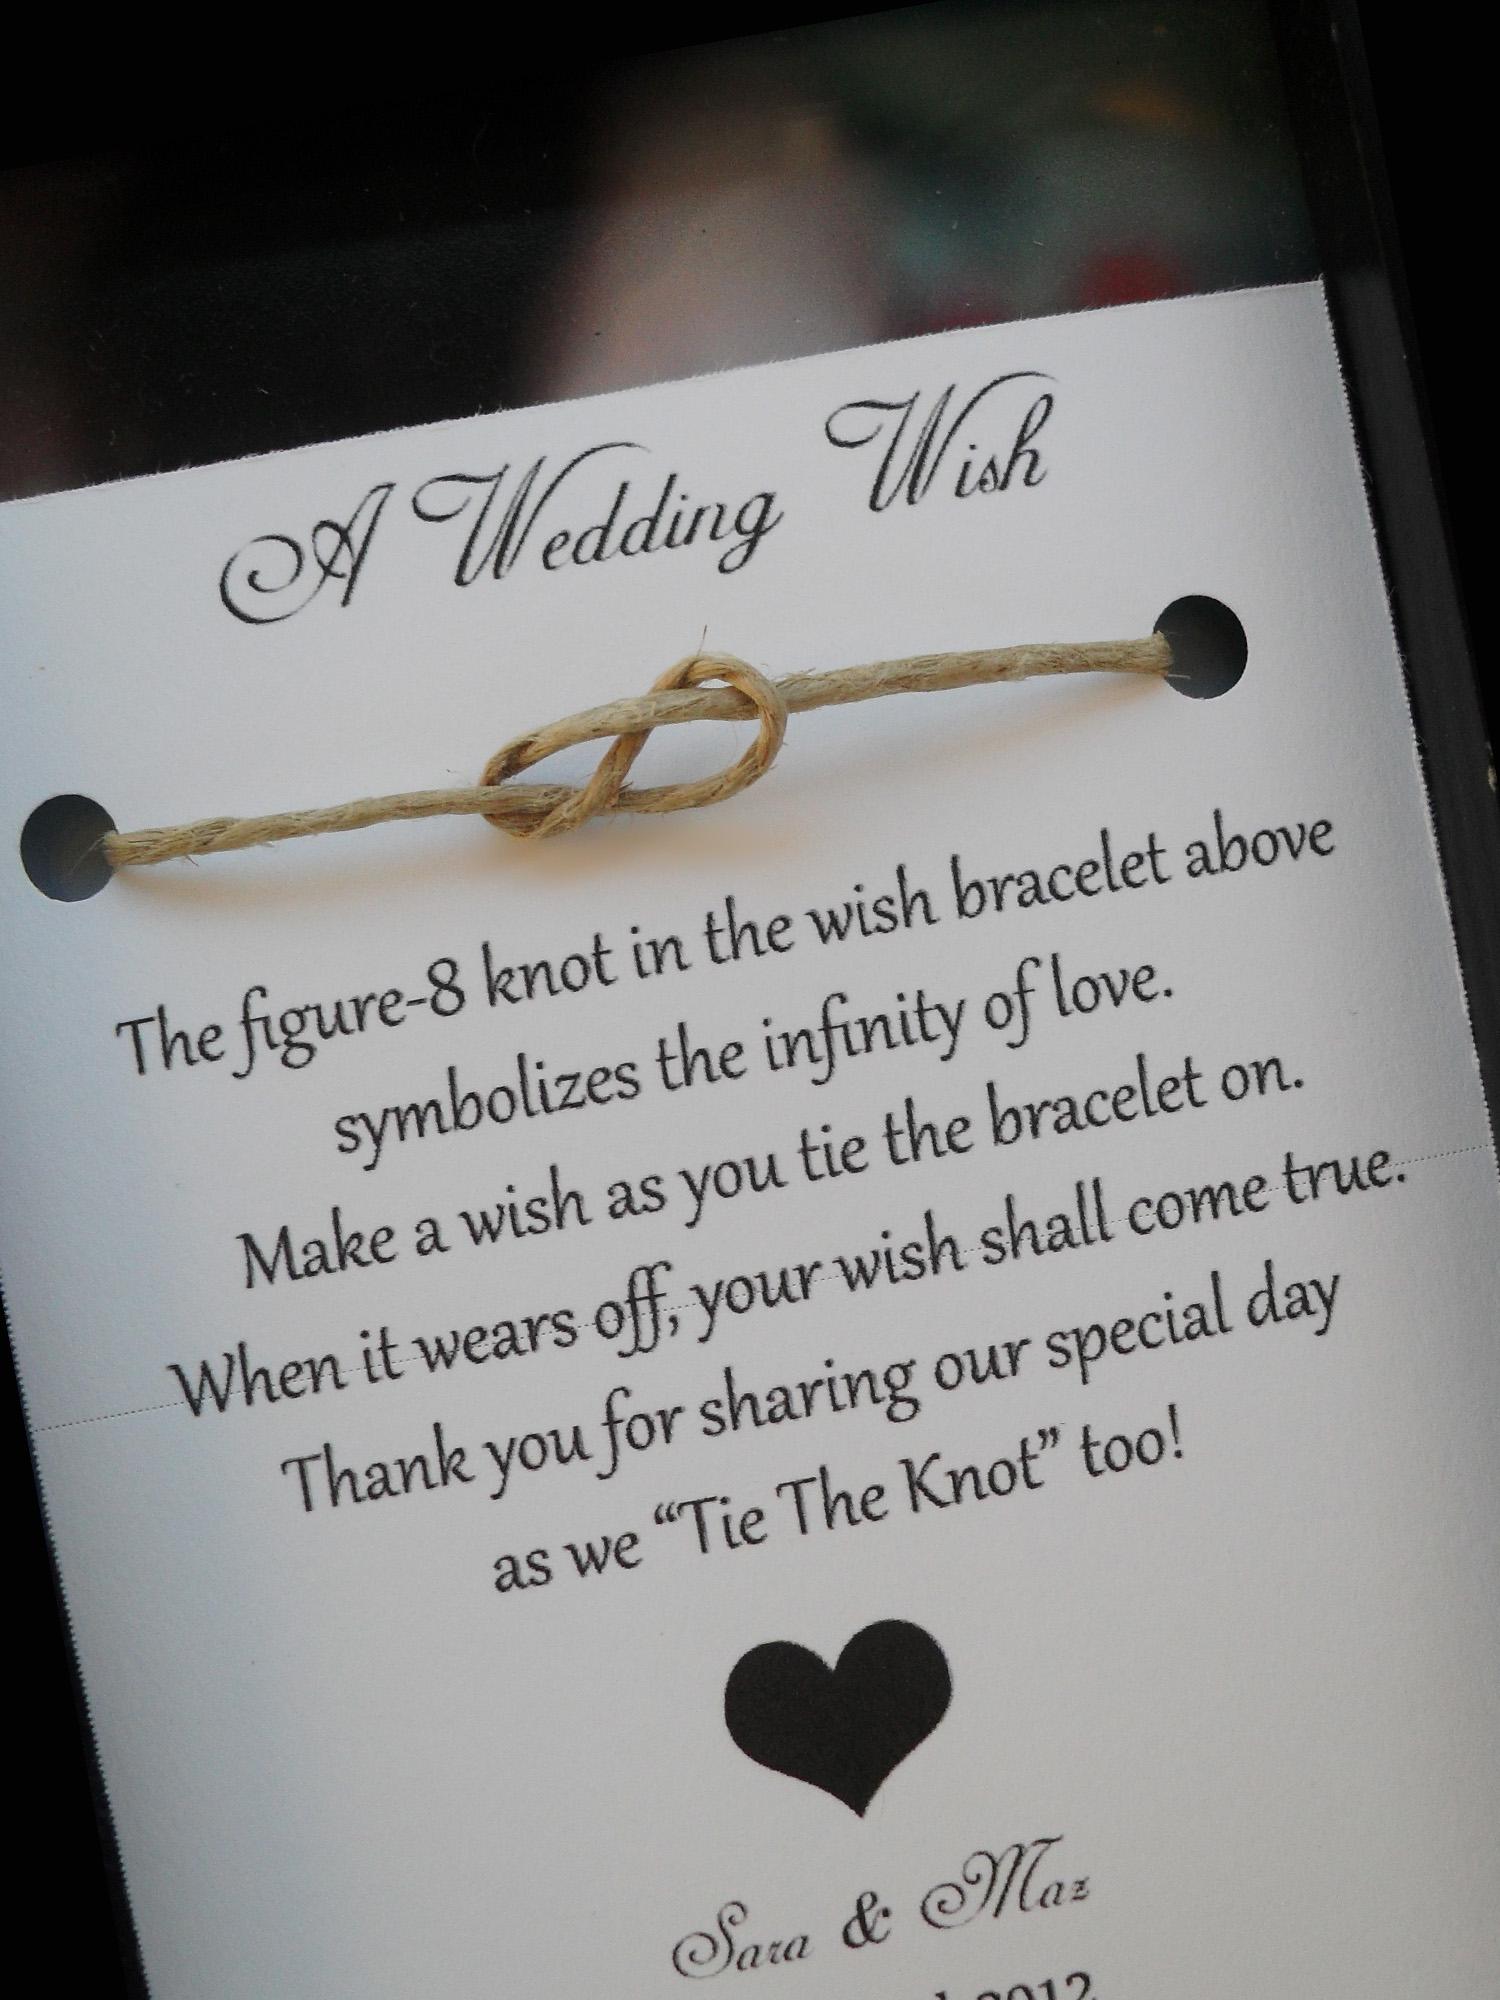 Wedding Gifts For Parents The Knot : Wedding Wish Bracelet - Wedding Favor- Favors-Personalized